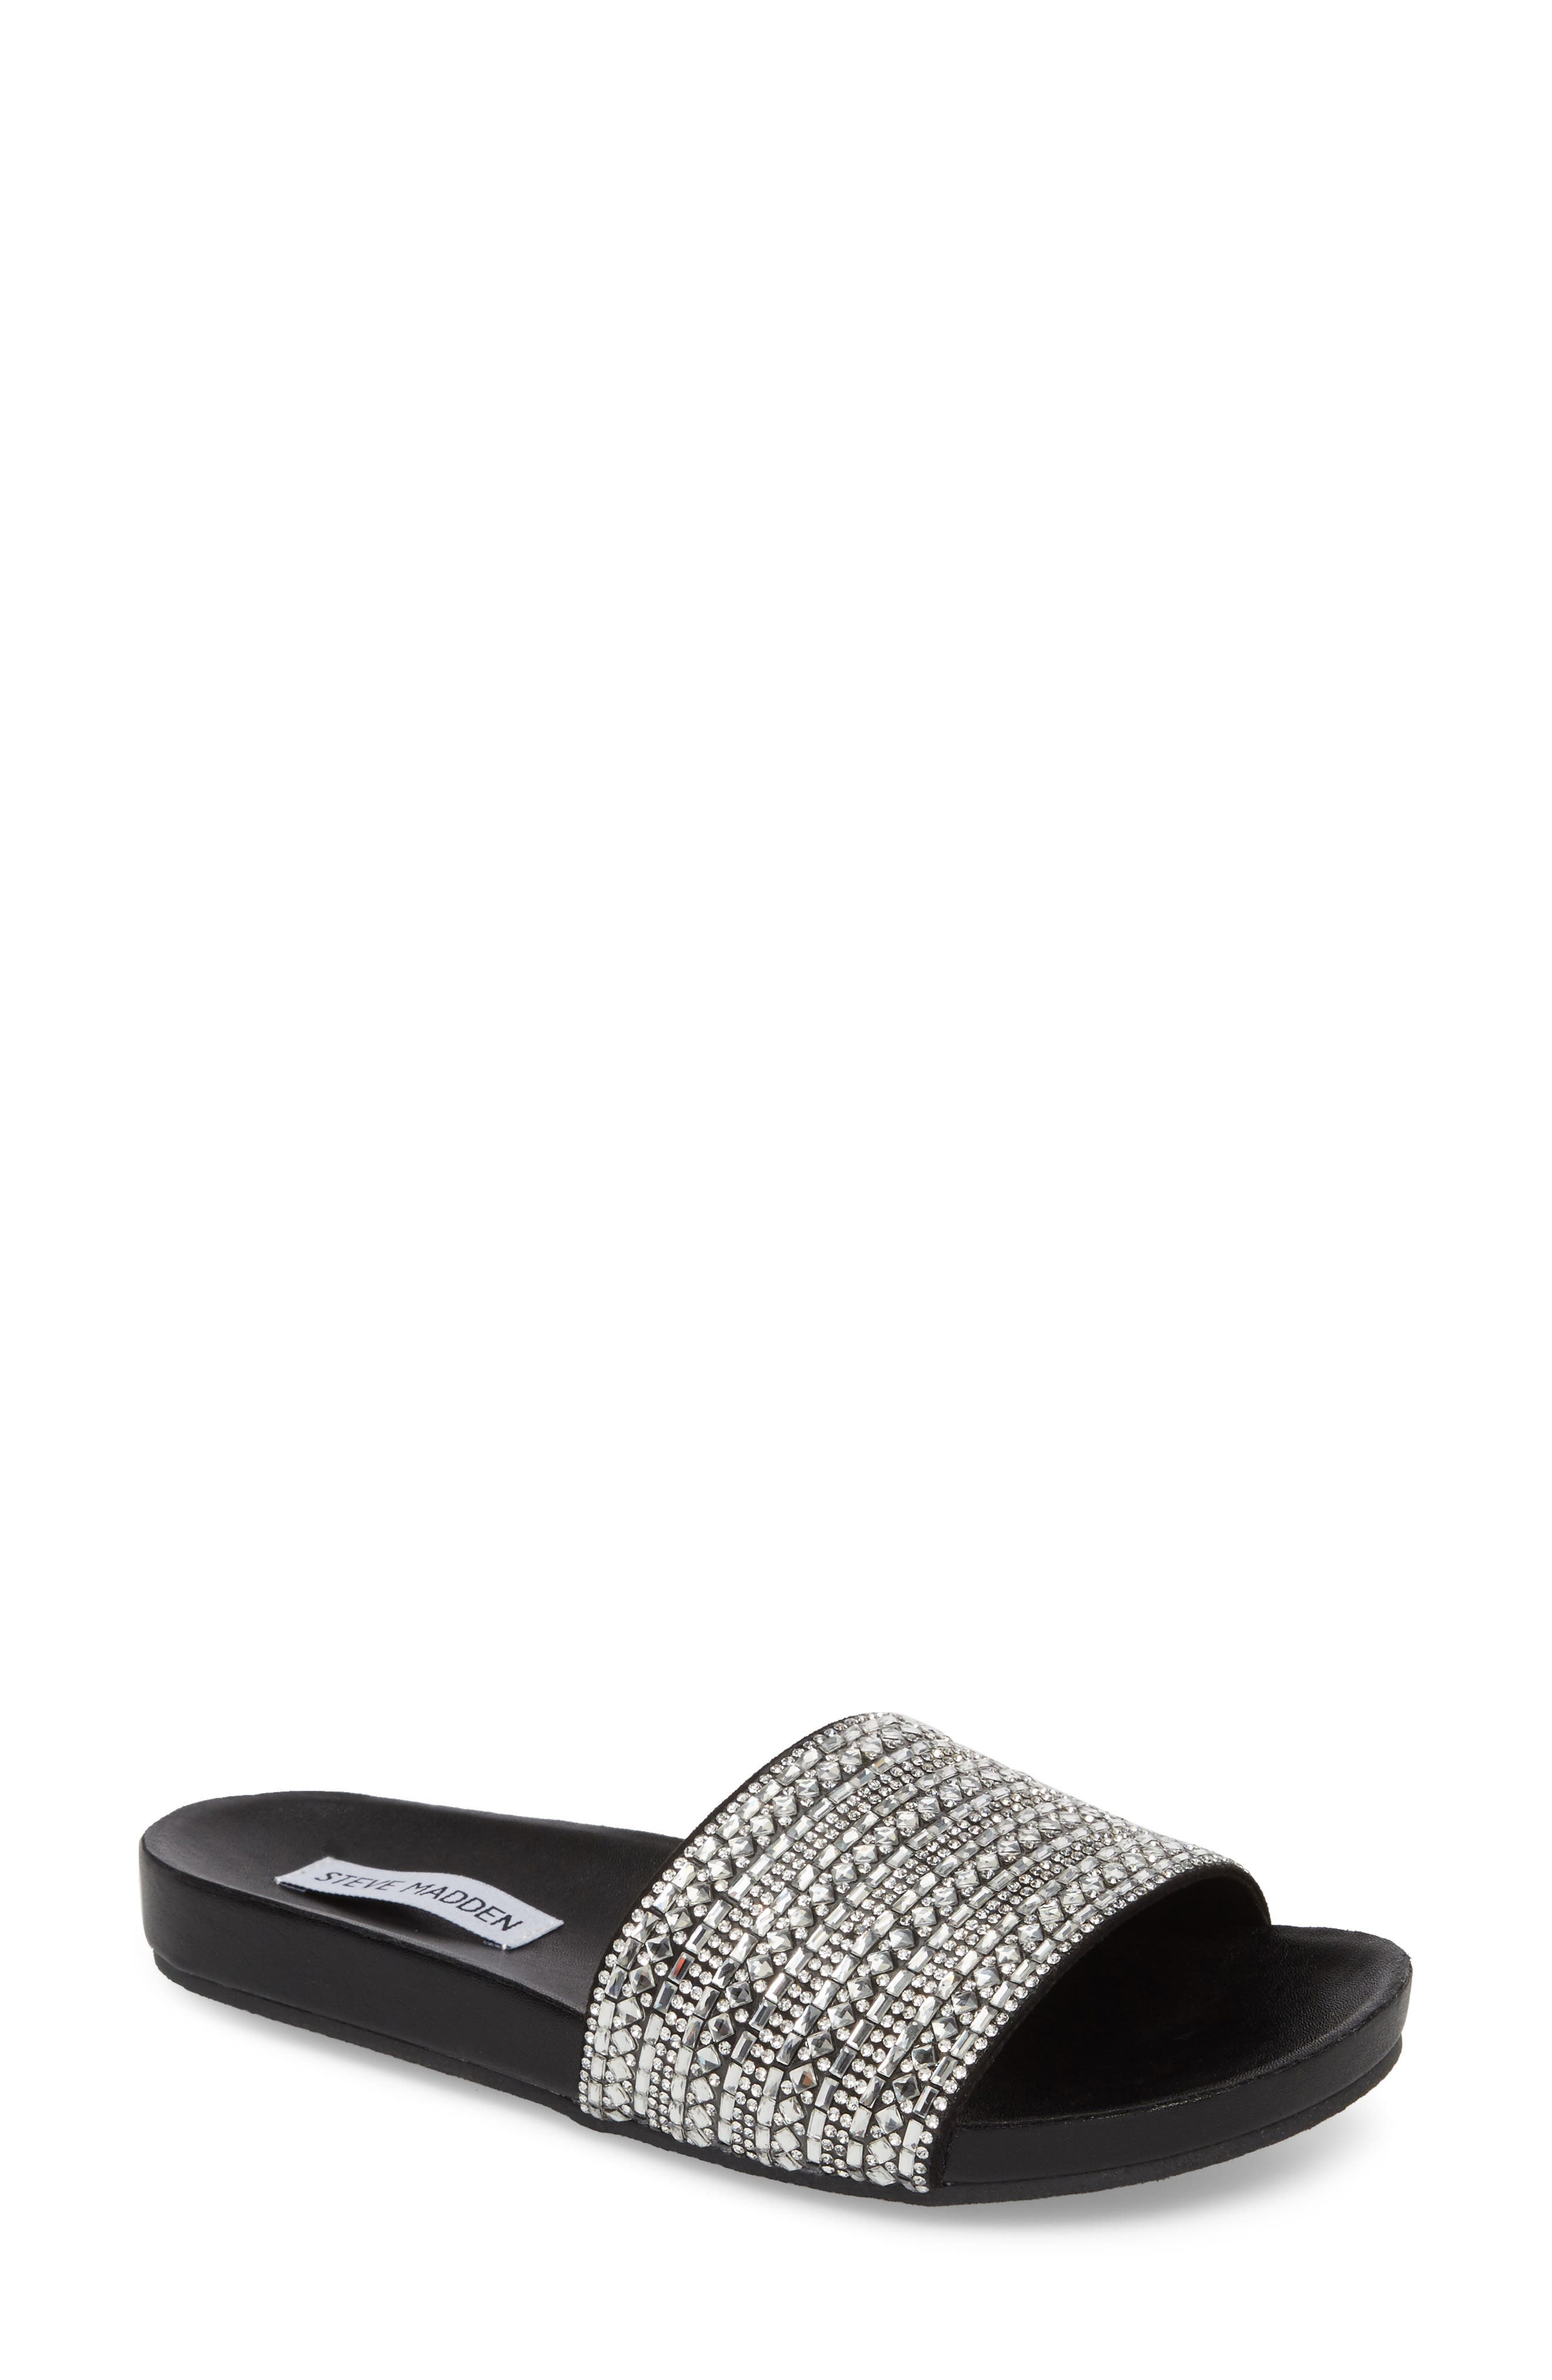 Alternate Image 1 Selected - Steve Madden Dazzle Embellished Slide Sandal (Women)